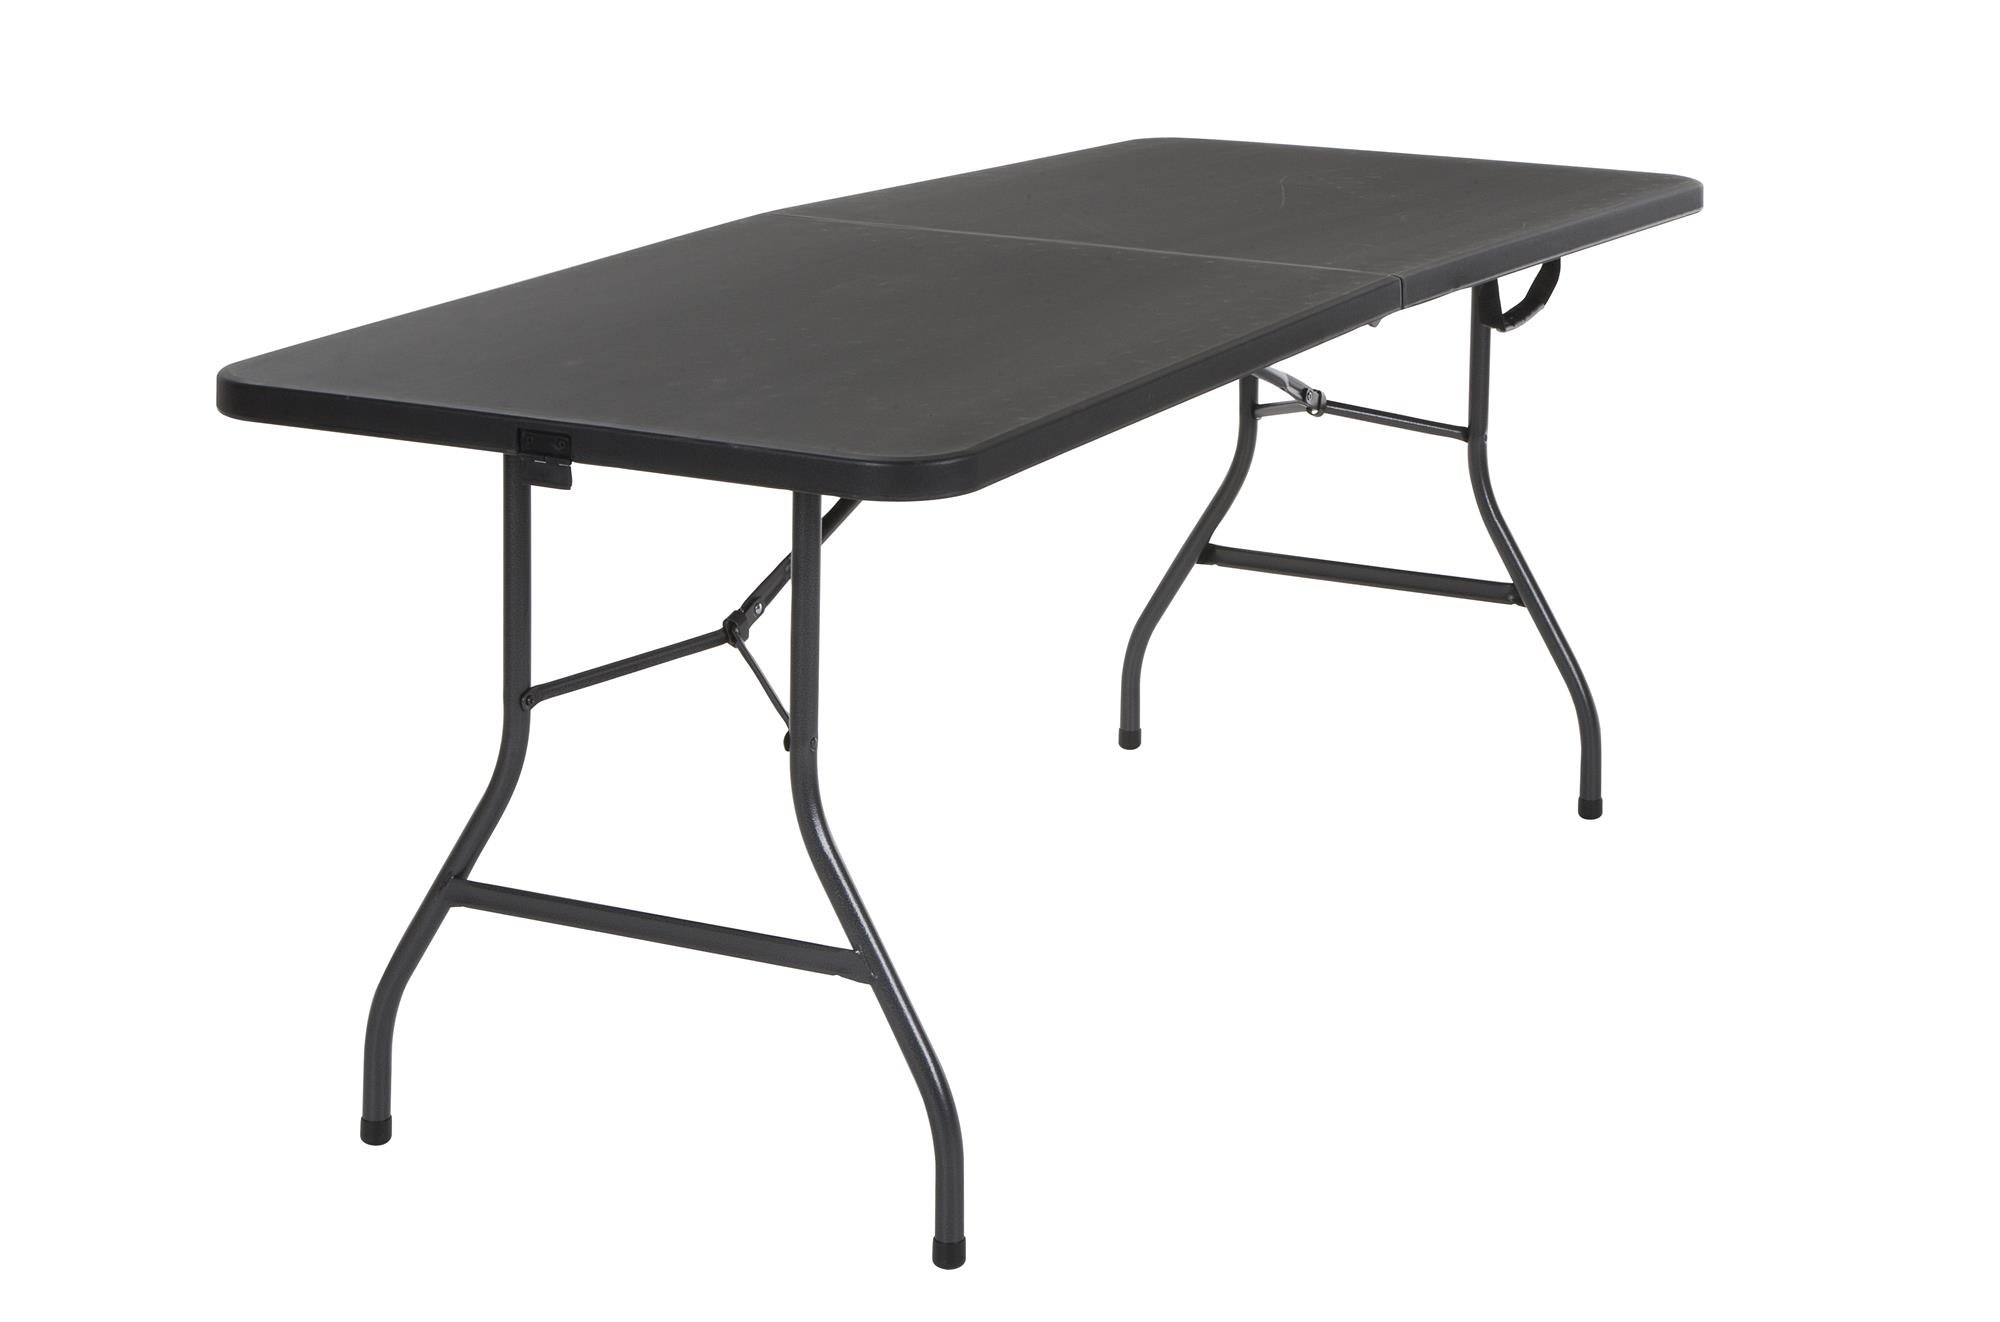 Cosco Deluxe 6 Foot x 30 inch Fold-in-Half Blow Molded Folding Table, Black Black by Cosco